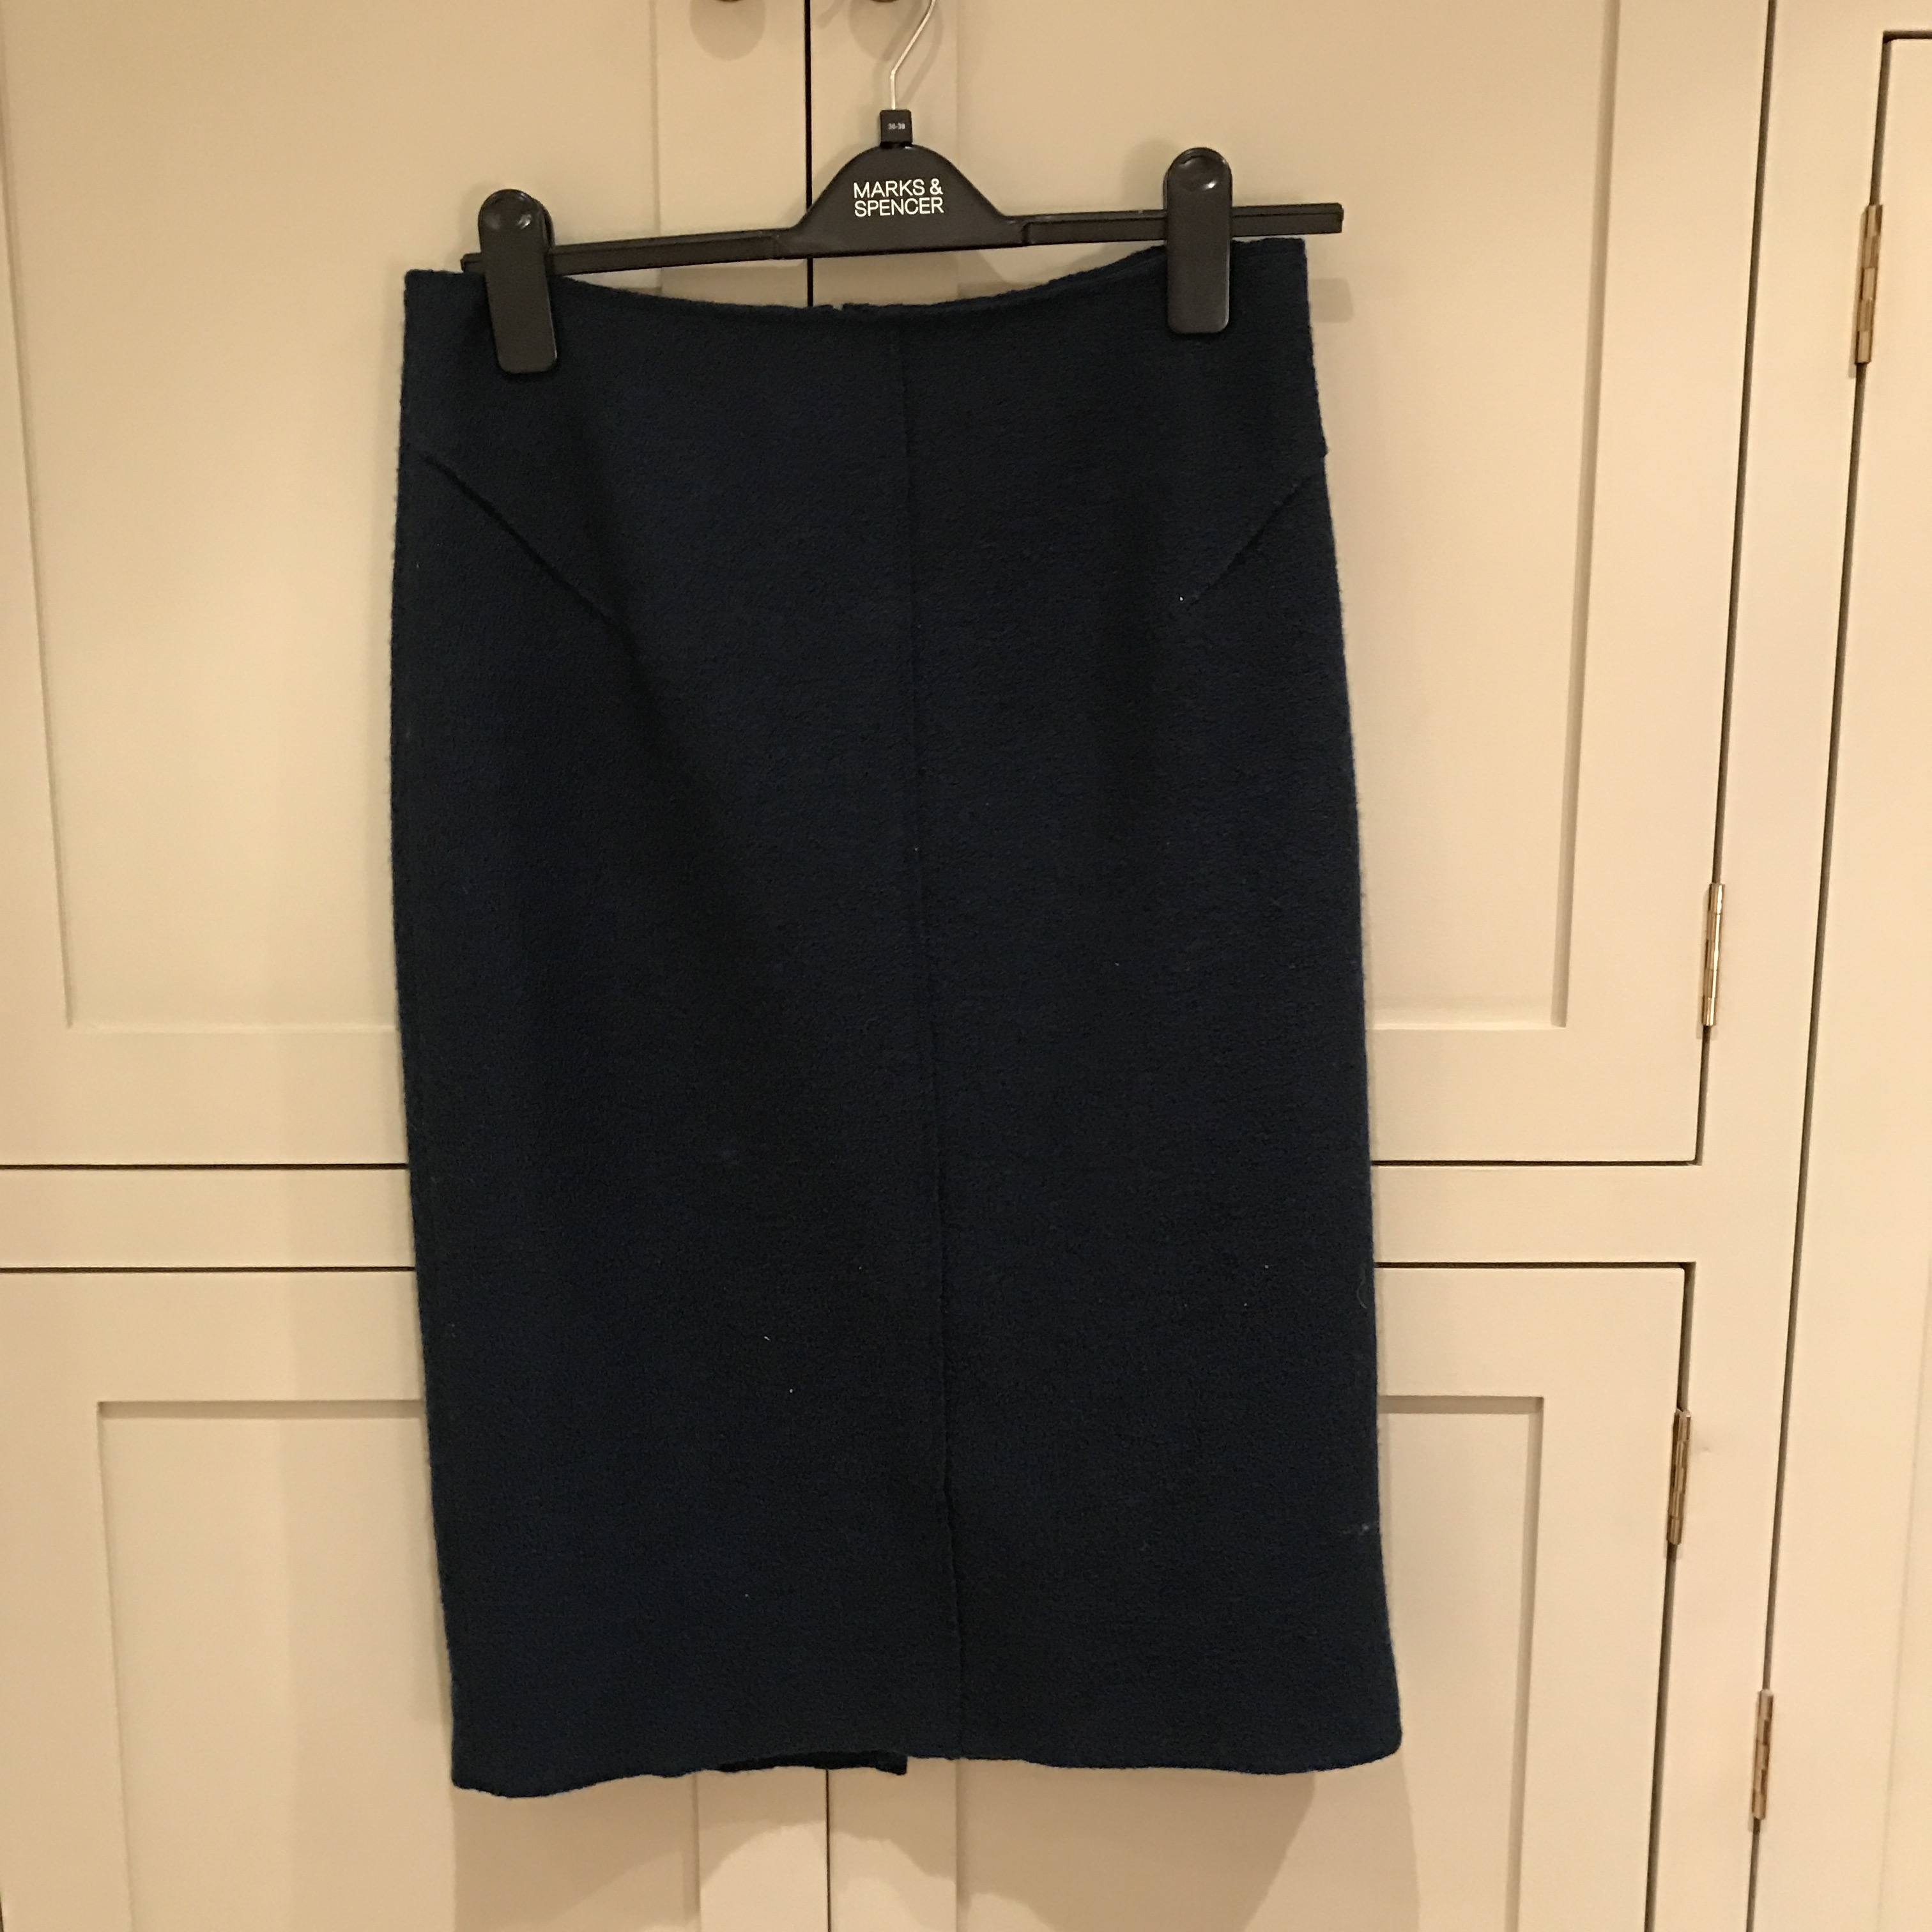 Whistles boiled wool pencil skirt (sale)